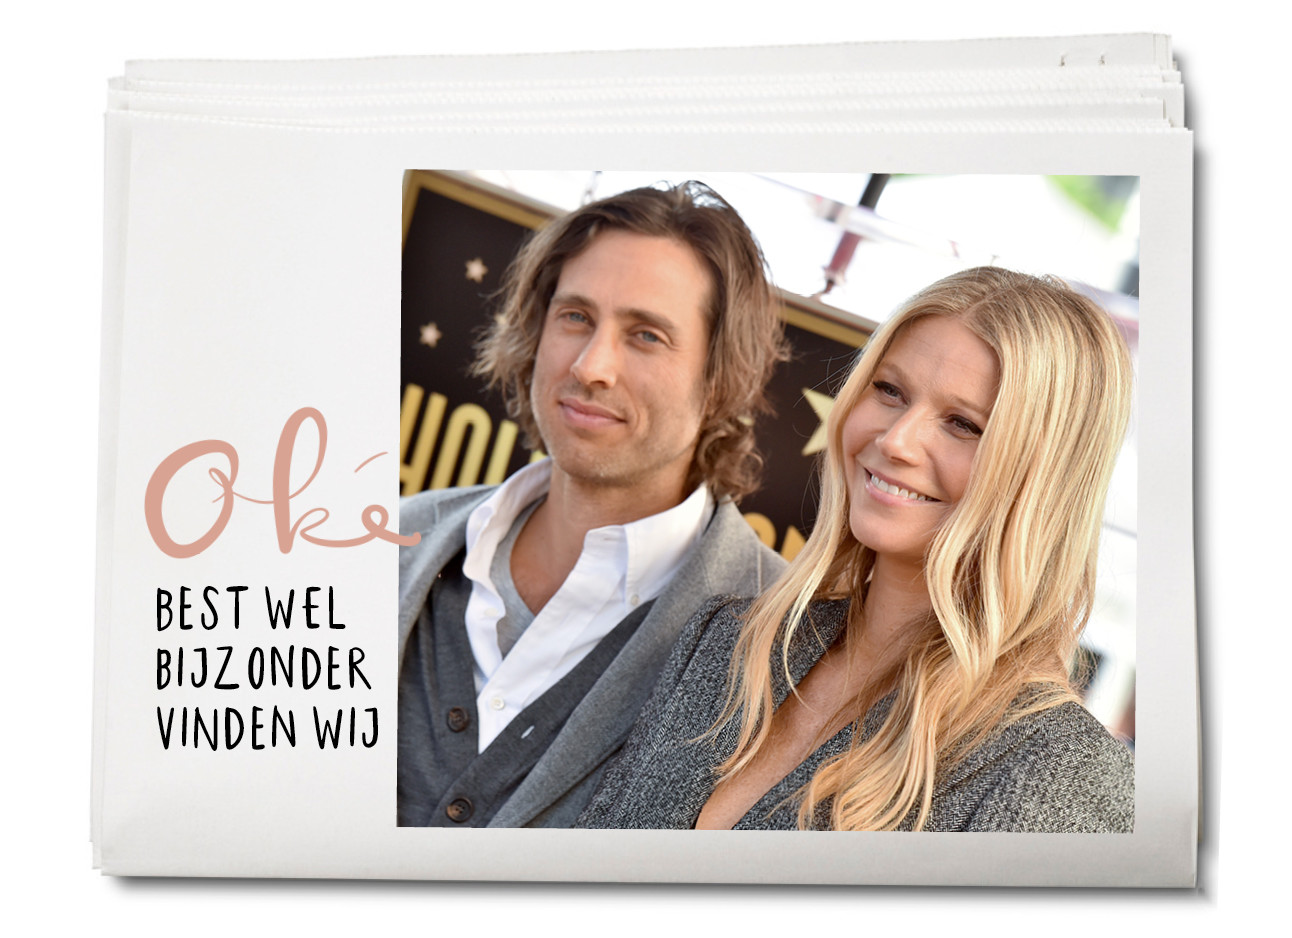 Gwyneth Paltrow met man